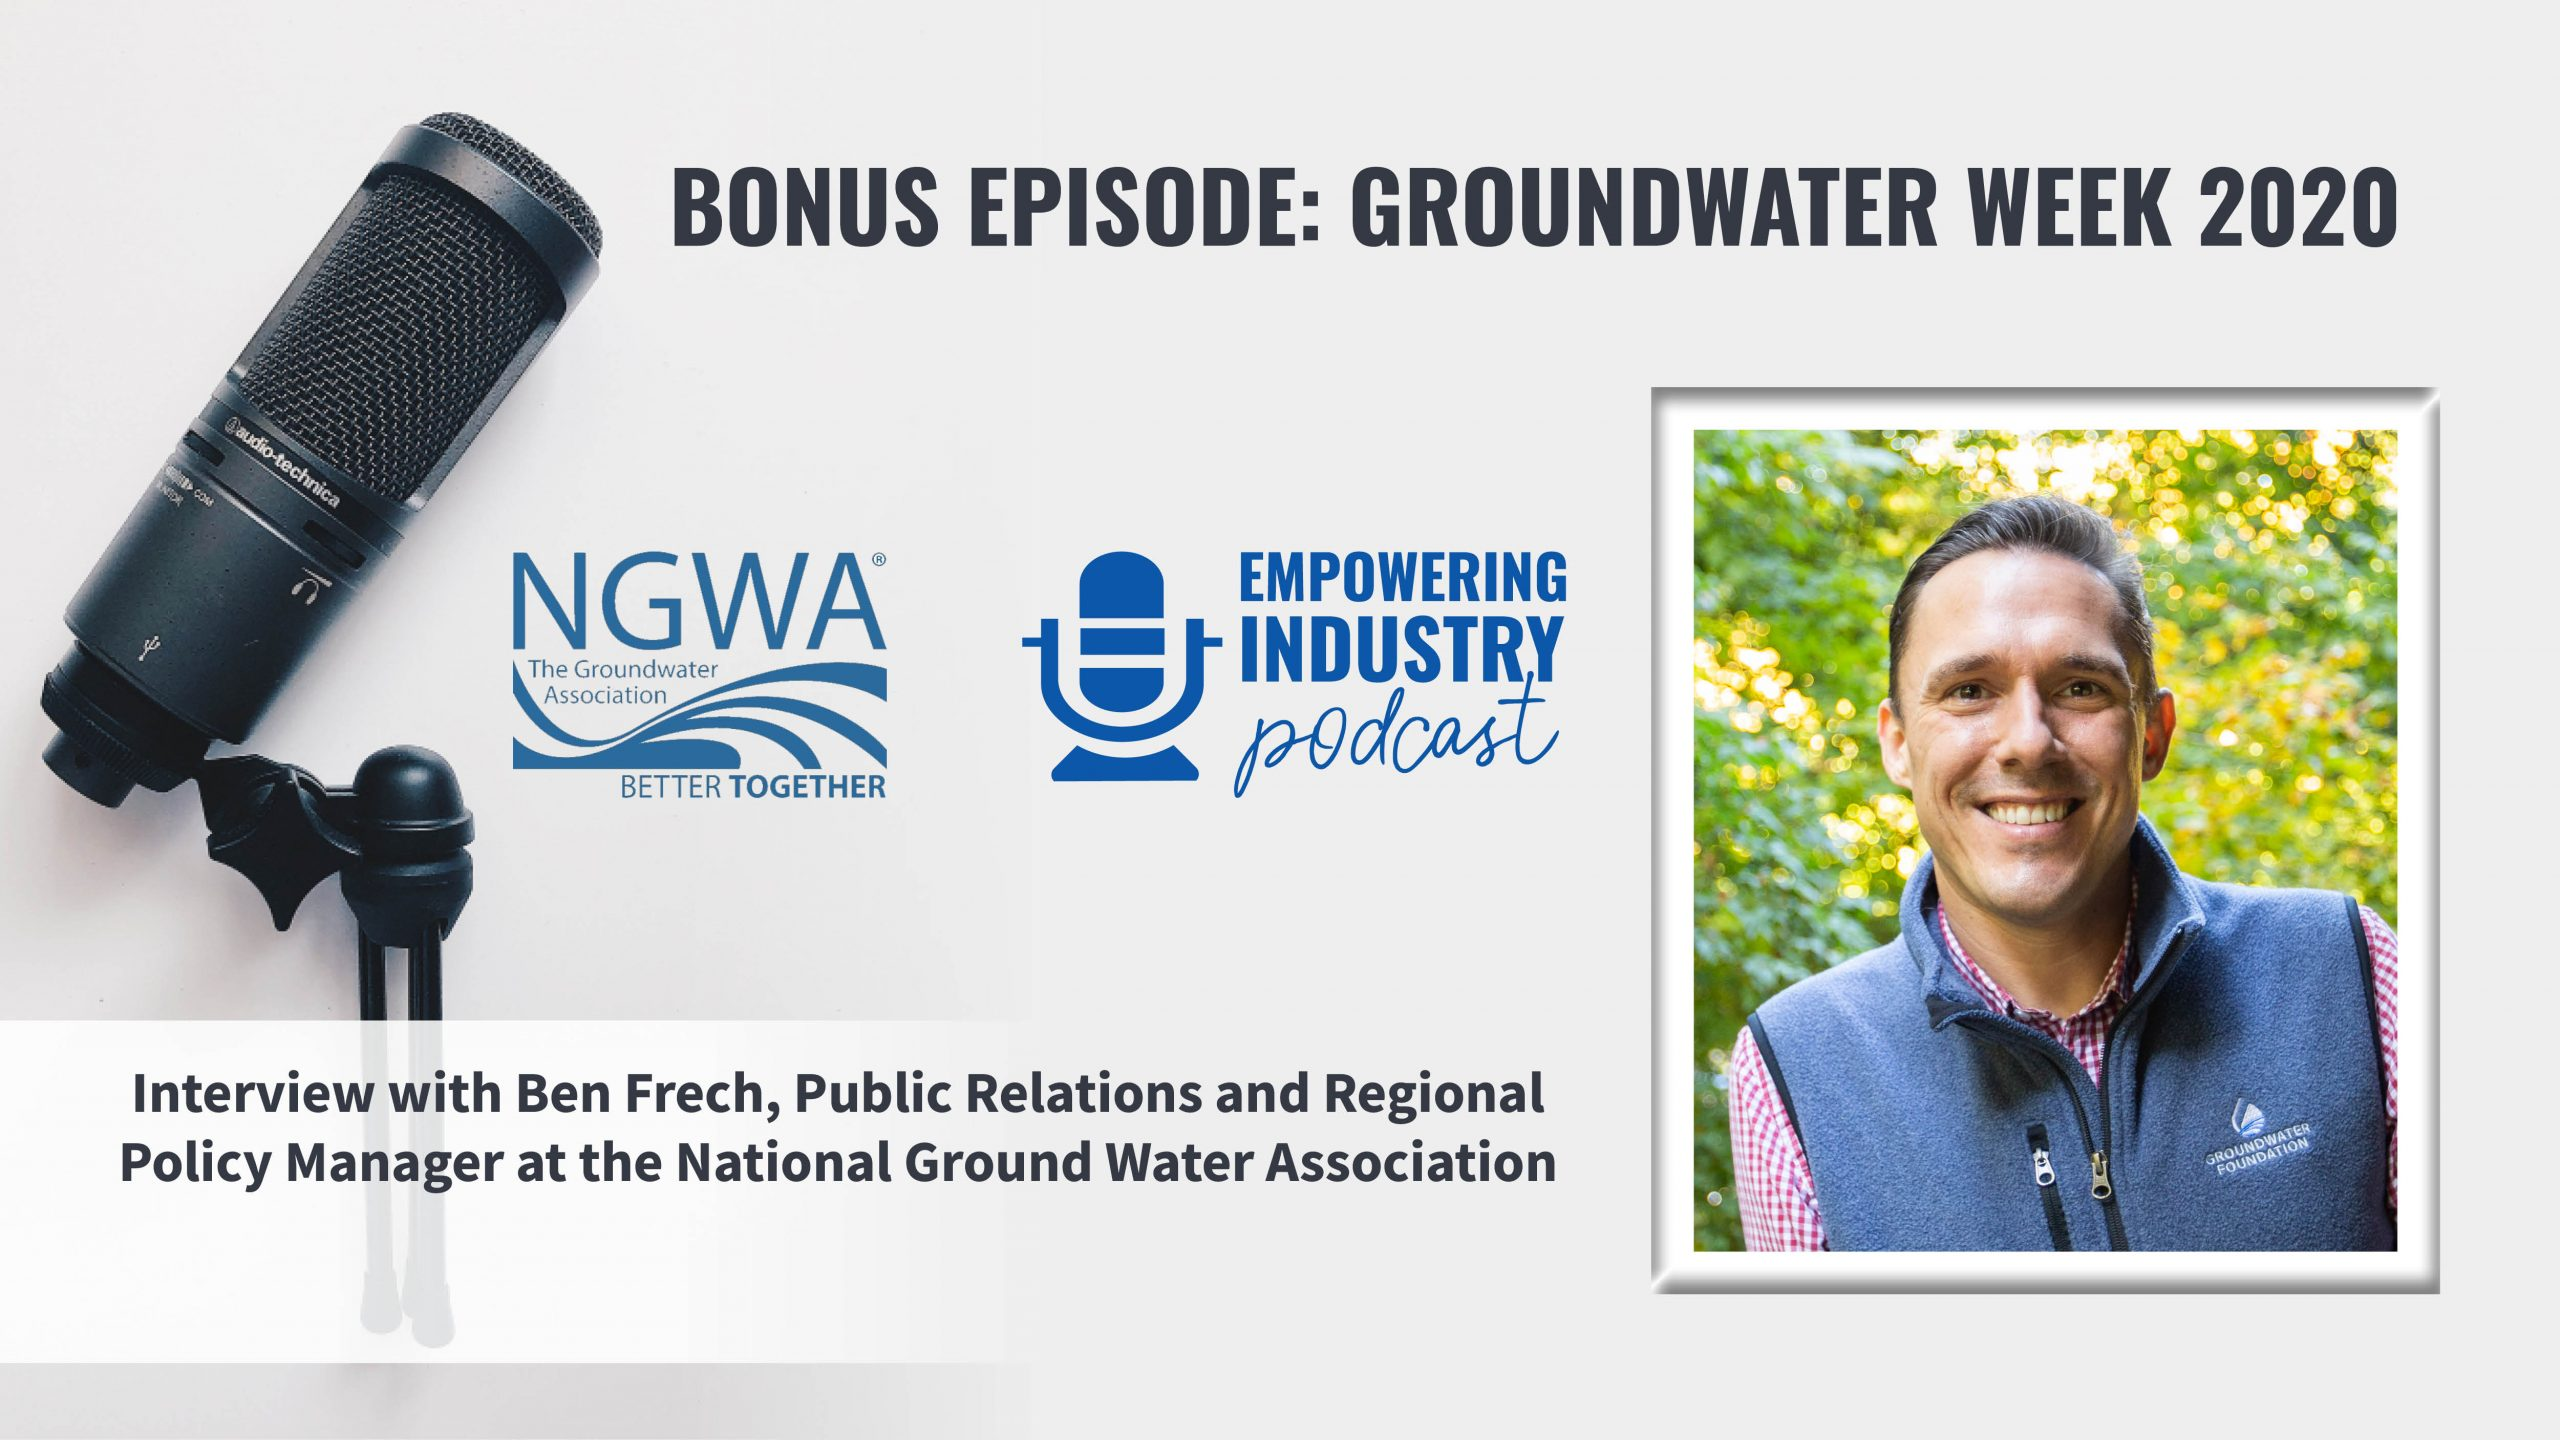 Empowering Industry Podcast - Groundwater Week